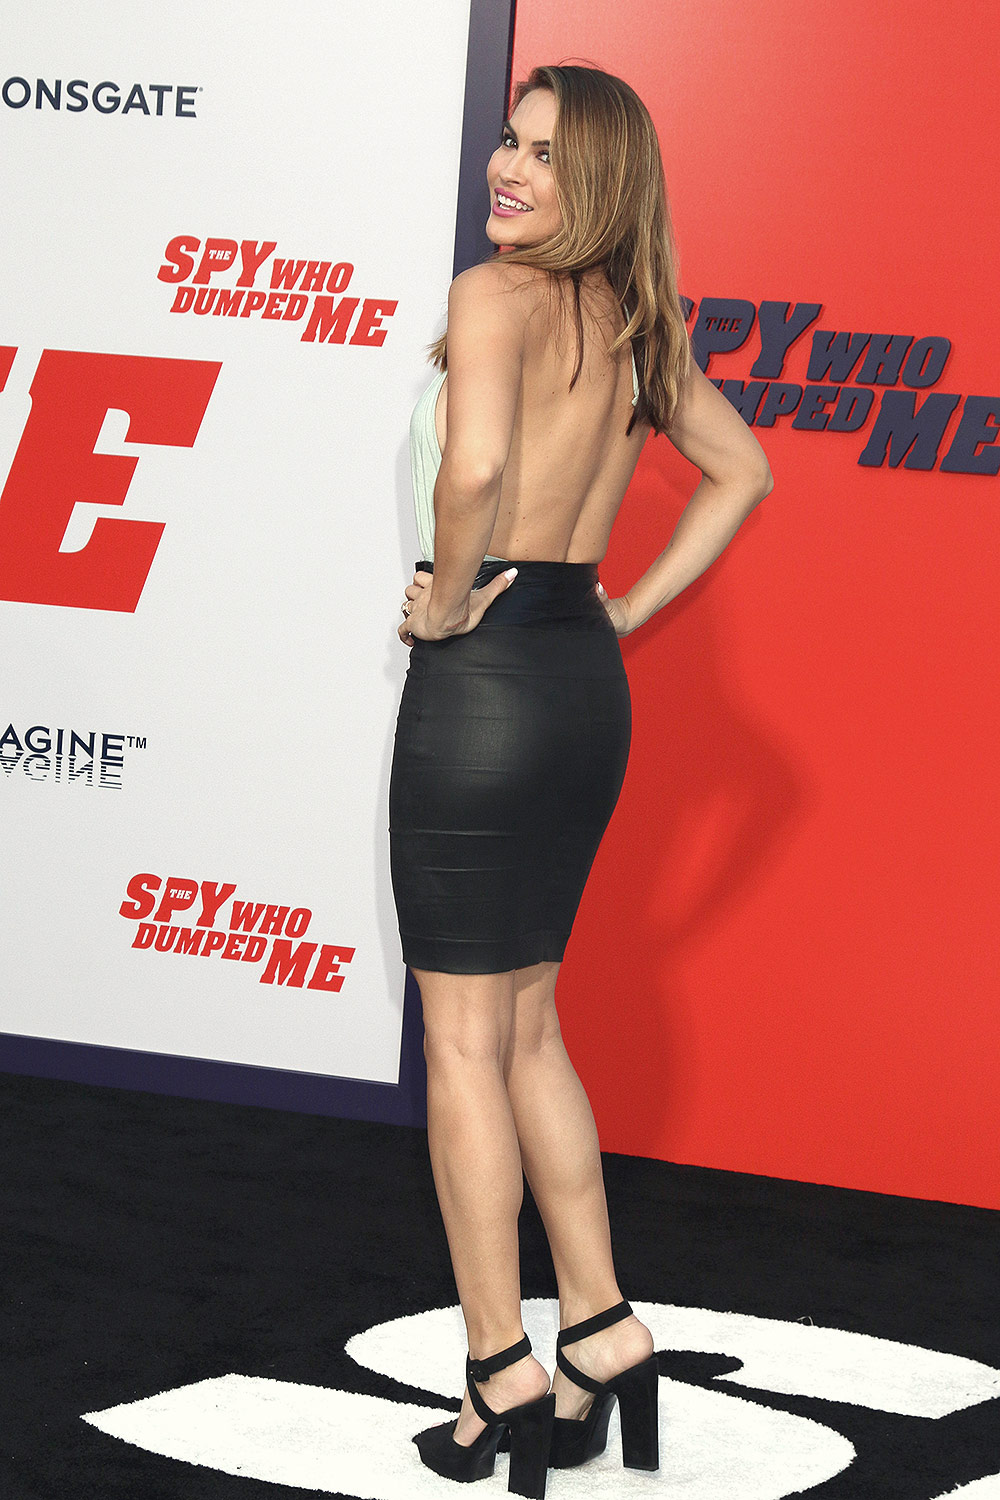 Chrishell Stause attends The Spy Who Dumped Me film premiere